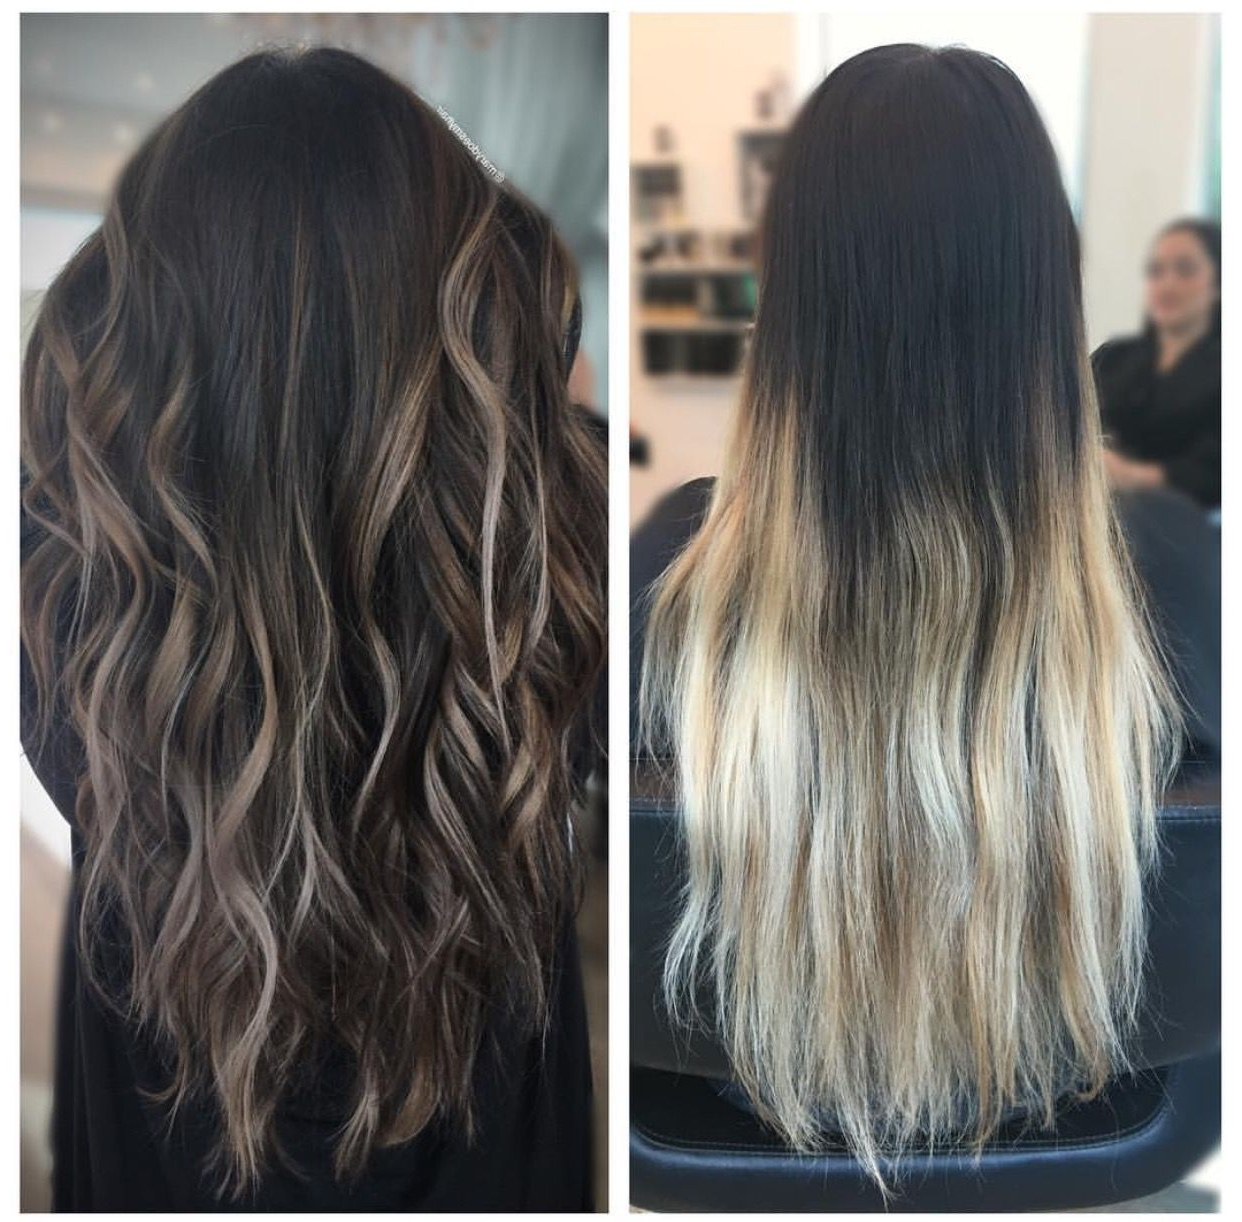 Hair Transformation, Dark To Light Brown Balayage #ombre With Regard To Well Liked Black To Light Brown Ombre Waves Hairstyles (View 11 of 20)